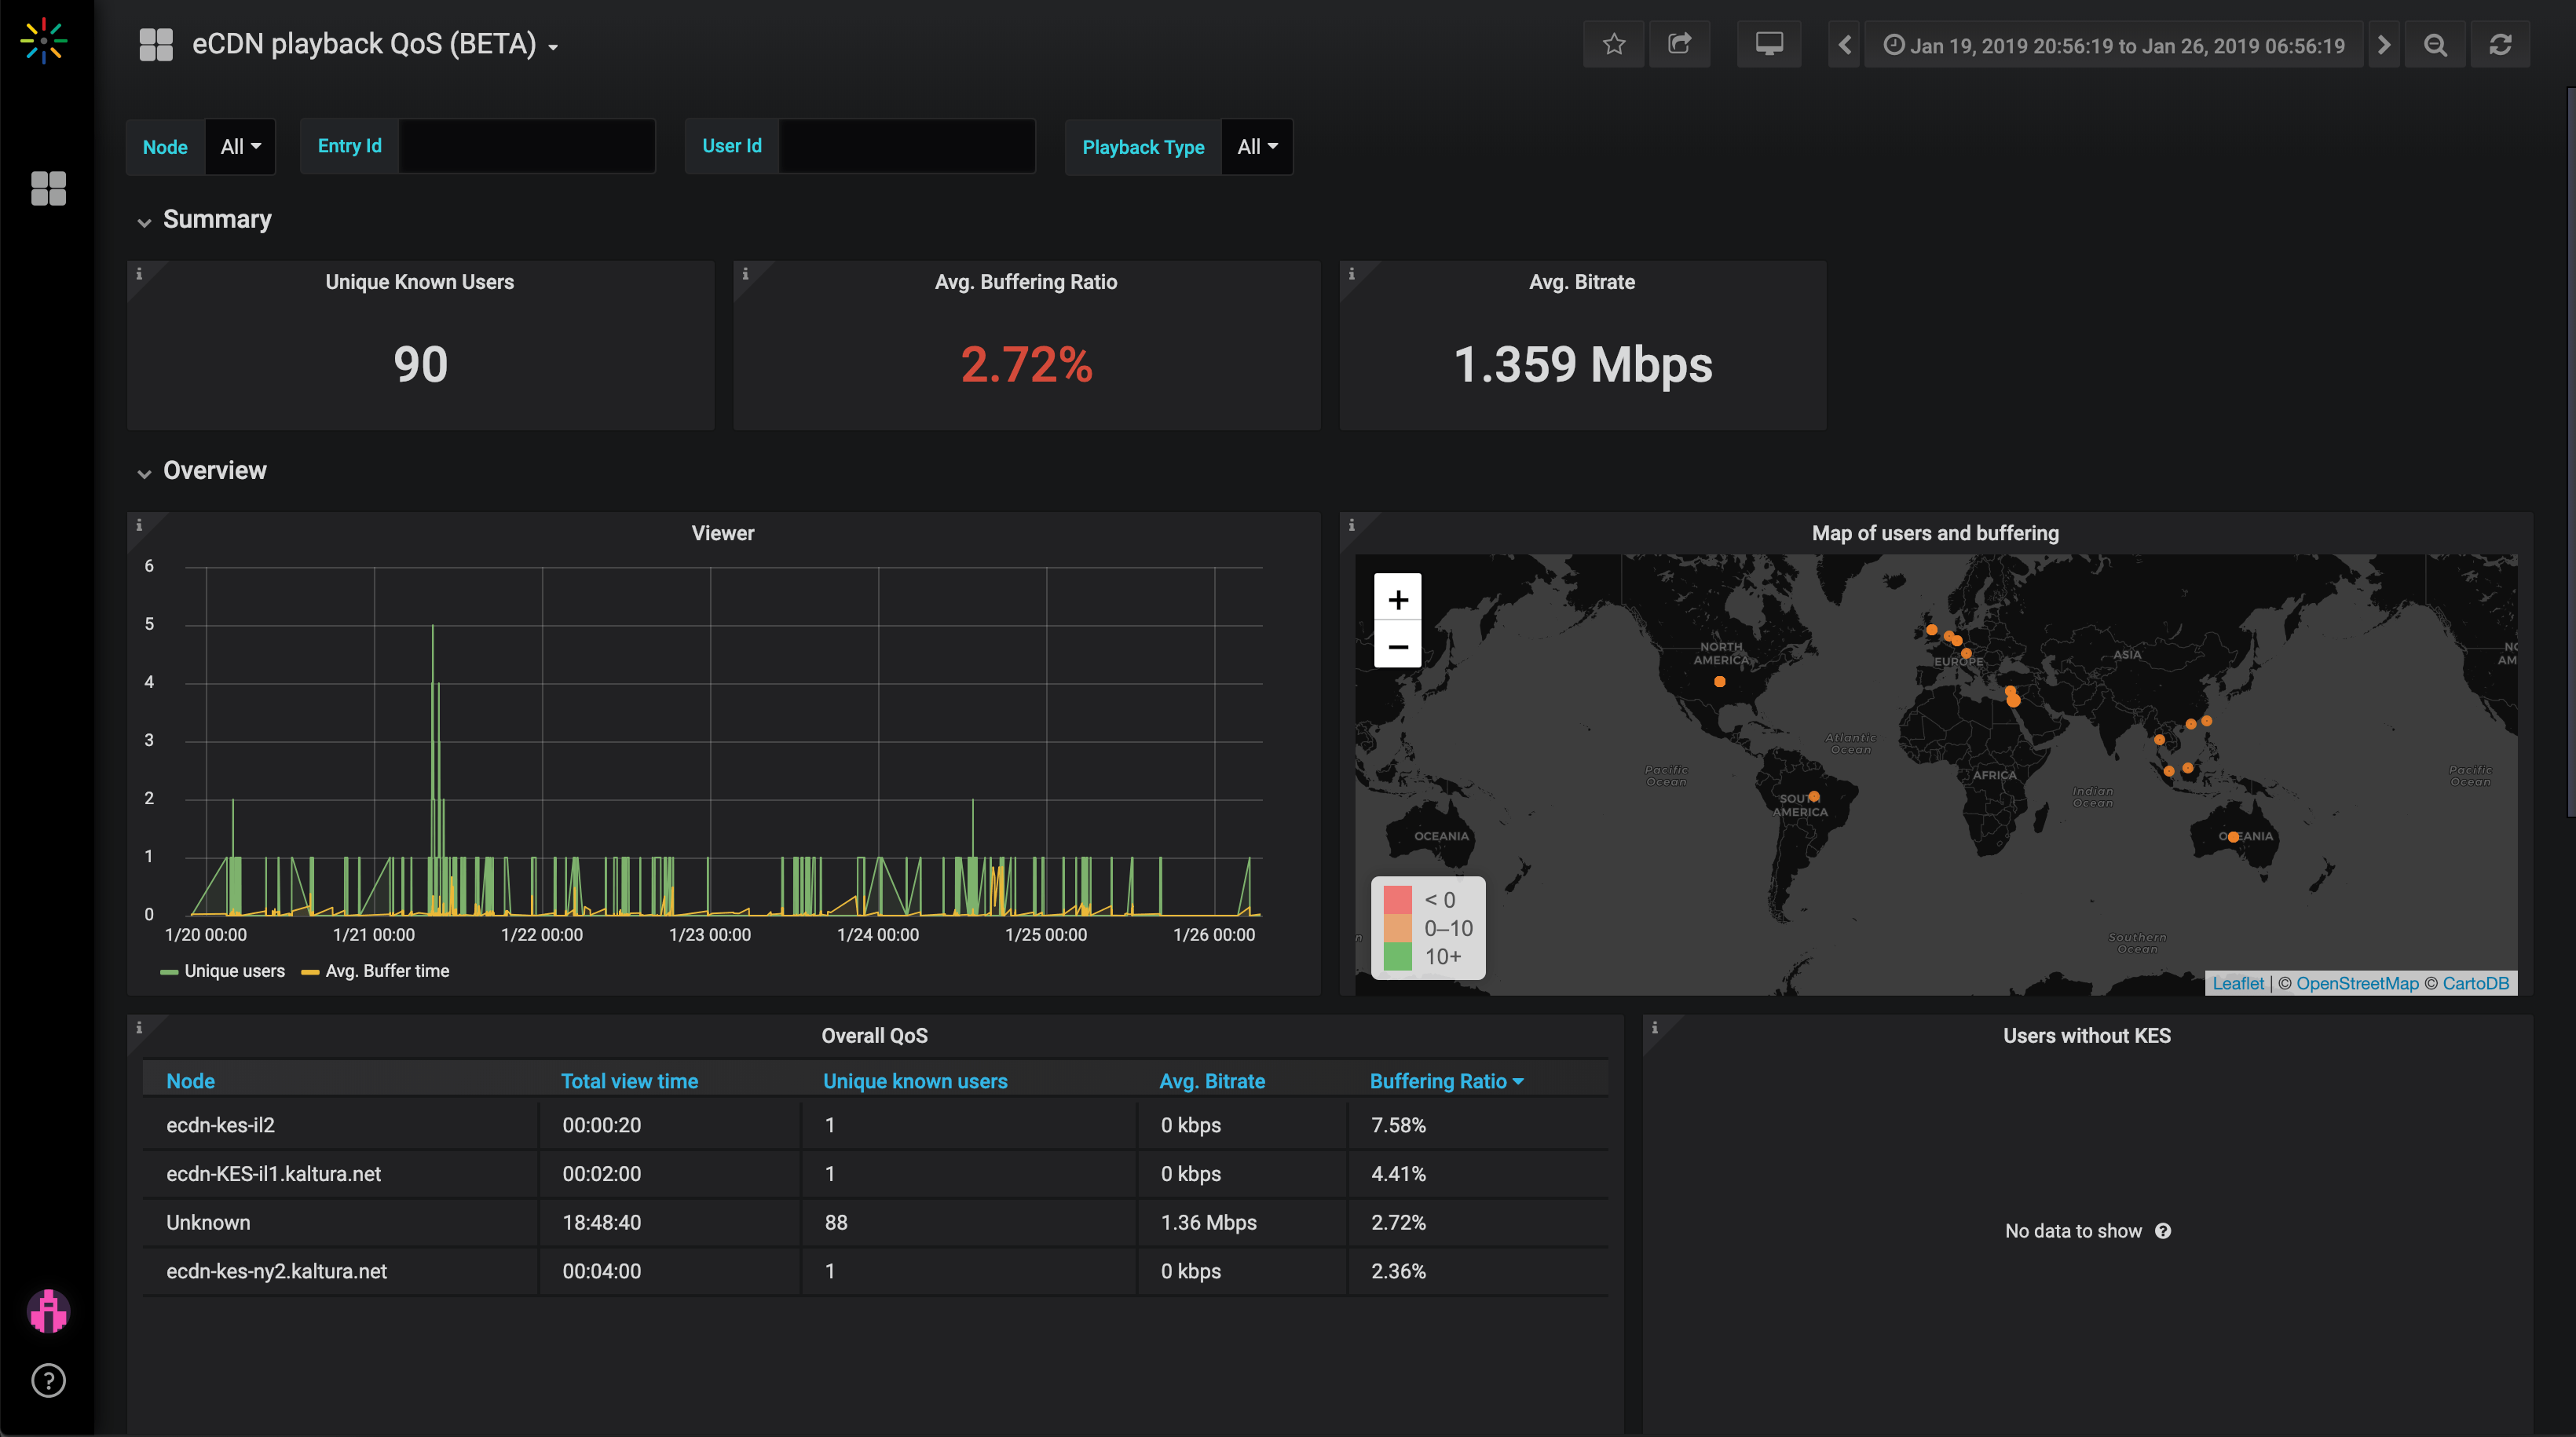 eCDN QoS dashboard